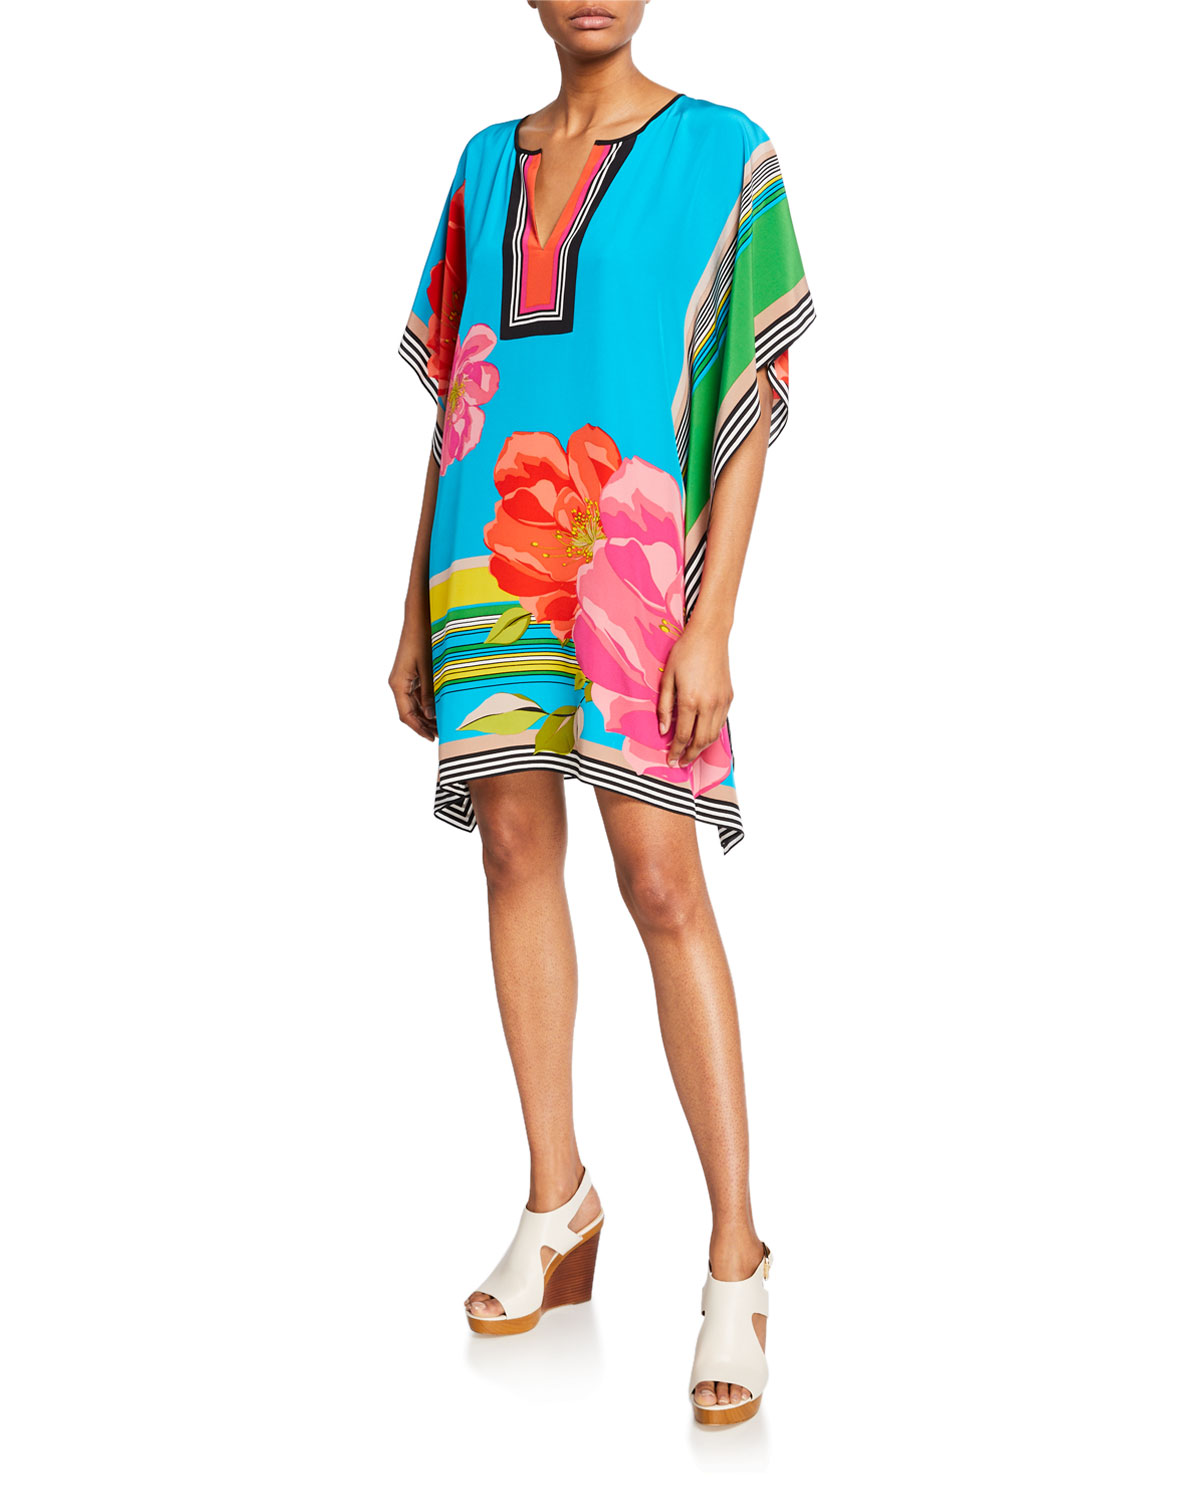 Trina Turk Dresses THEODORA FLY OVER FLORAL SILK TUNIC DRESS